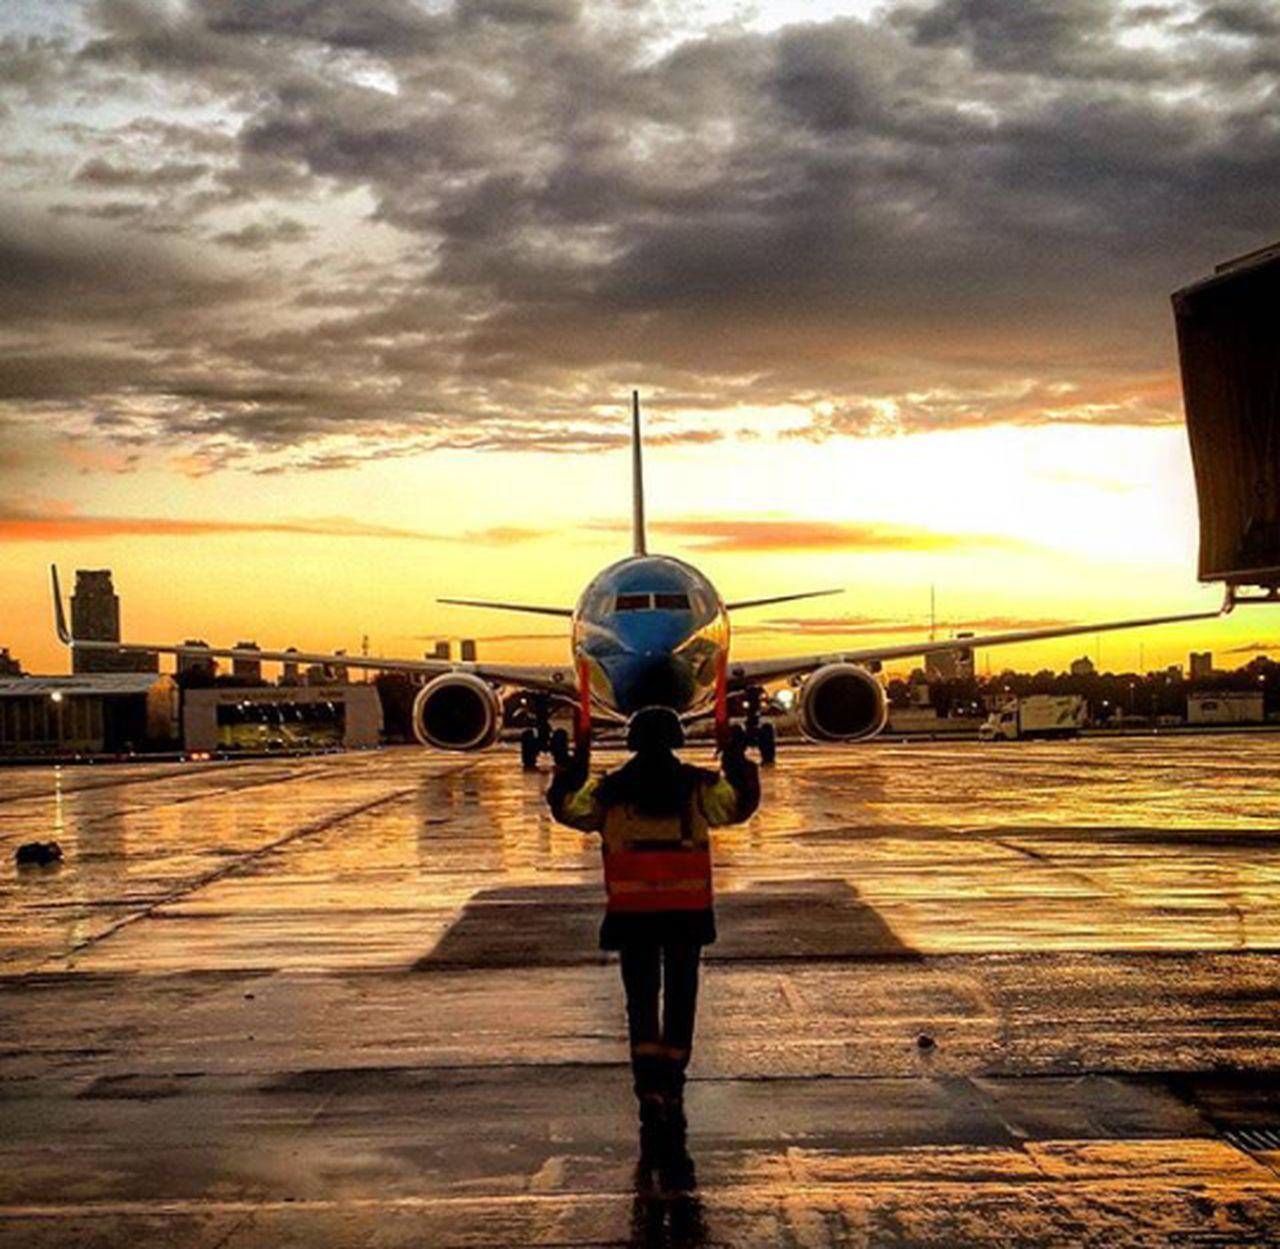 Sunset rain Sky One Person Outdoors People Urban Skyline Outdoors Rain Airport AirPlane ✈ Scenics Marshaling